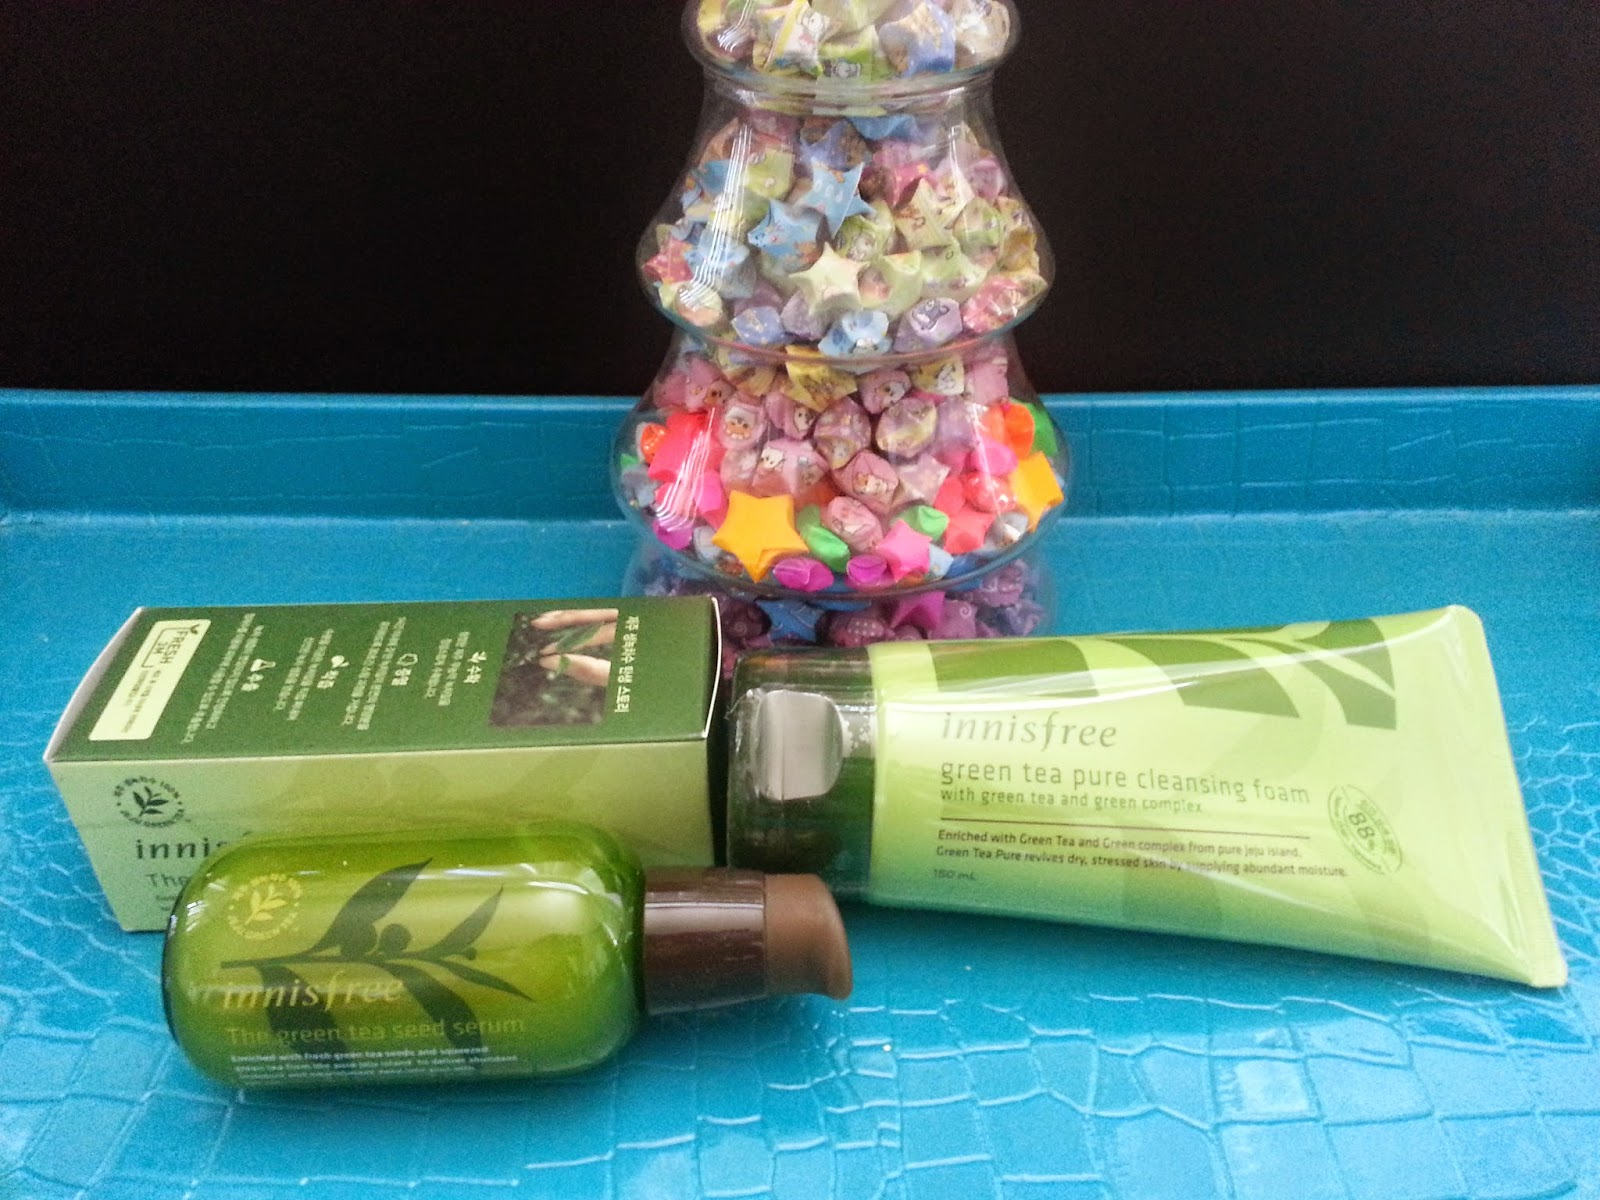 Innisfree Green Tea Seed Serum and green tea pure cleansing Foam Set